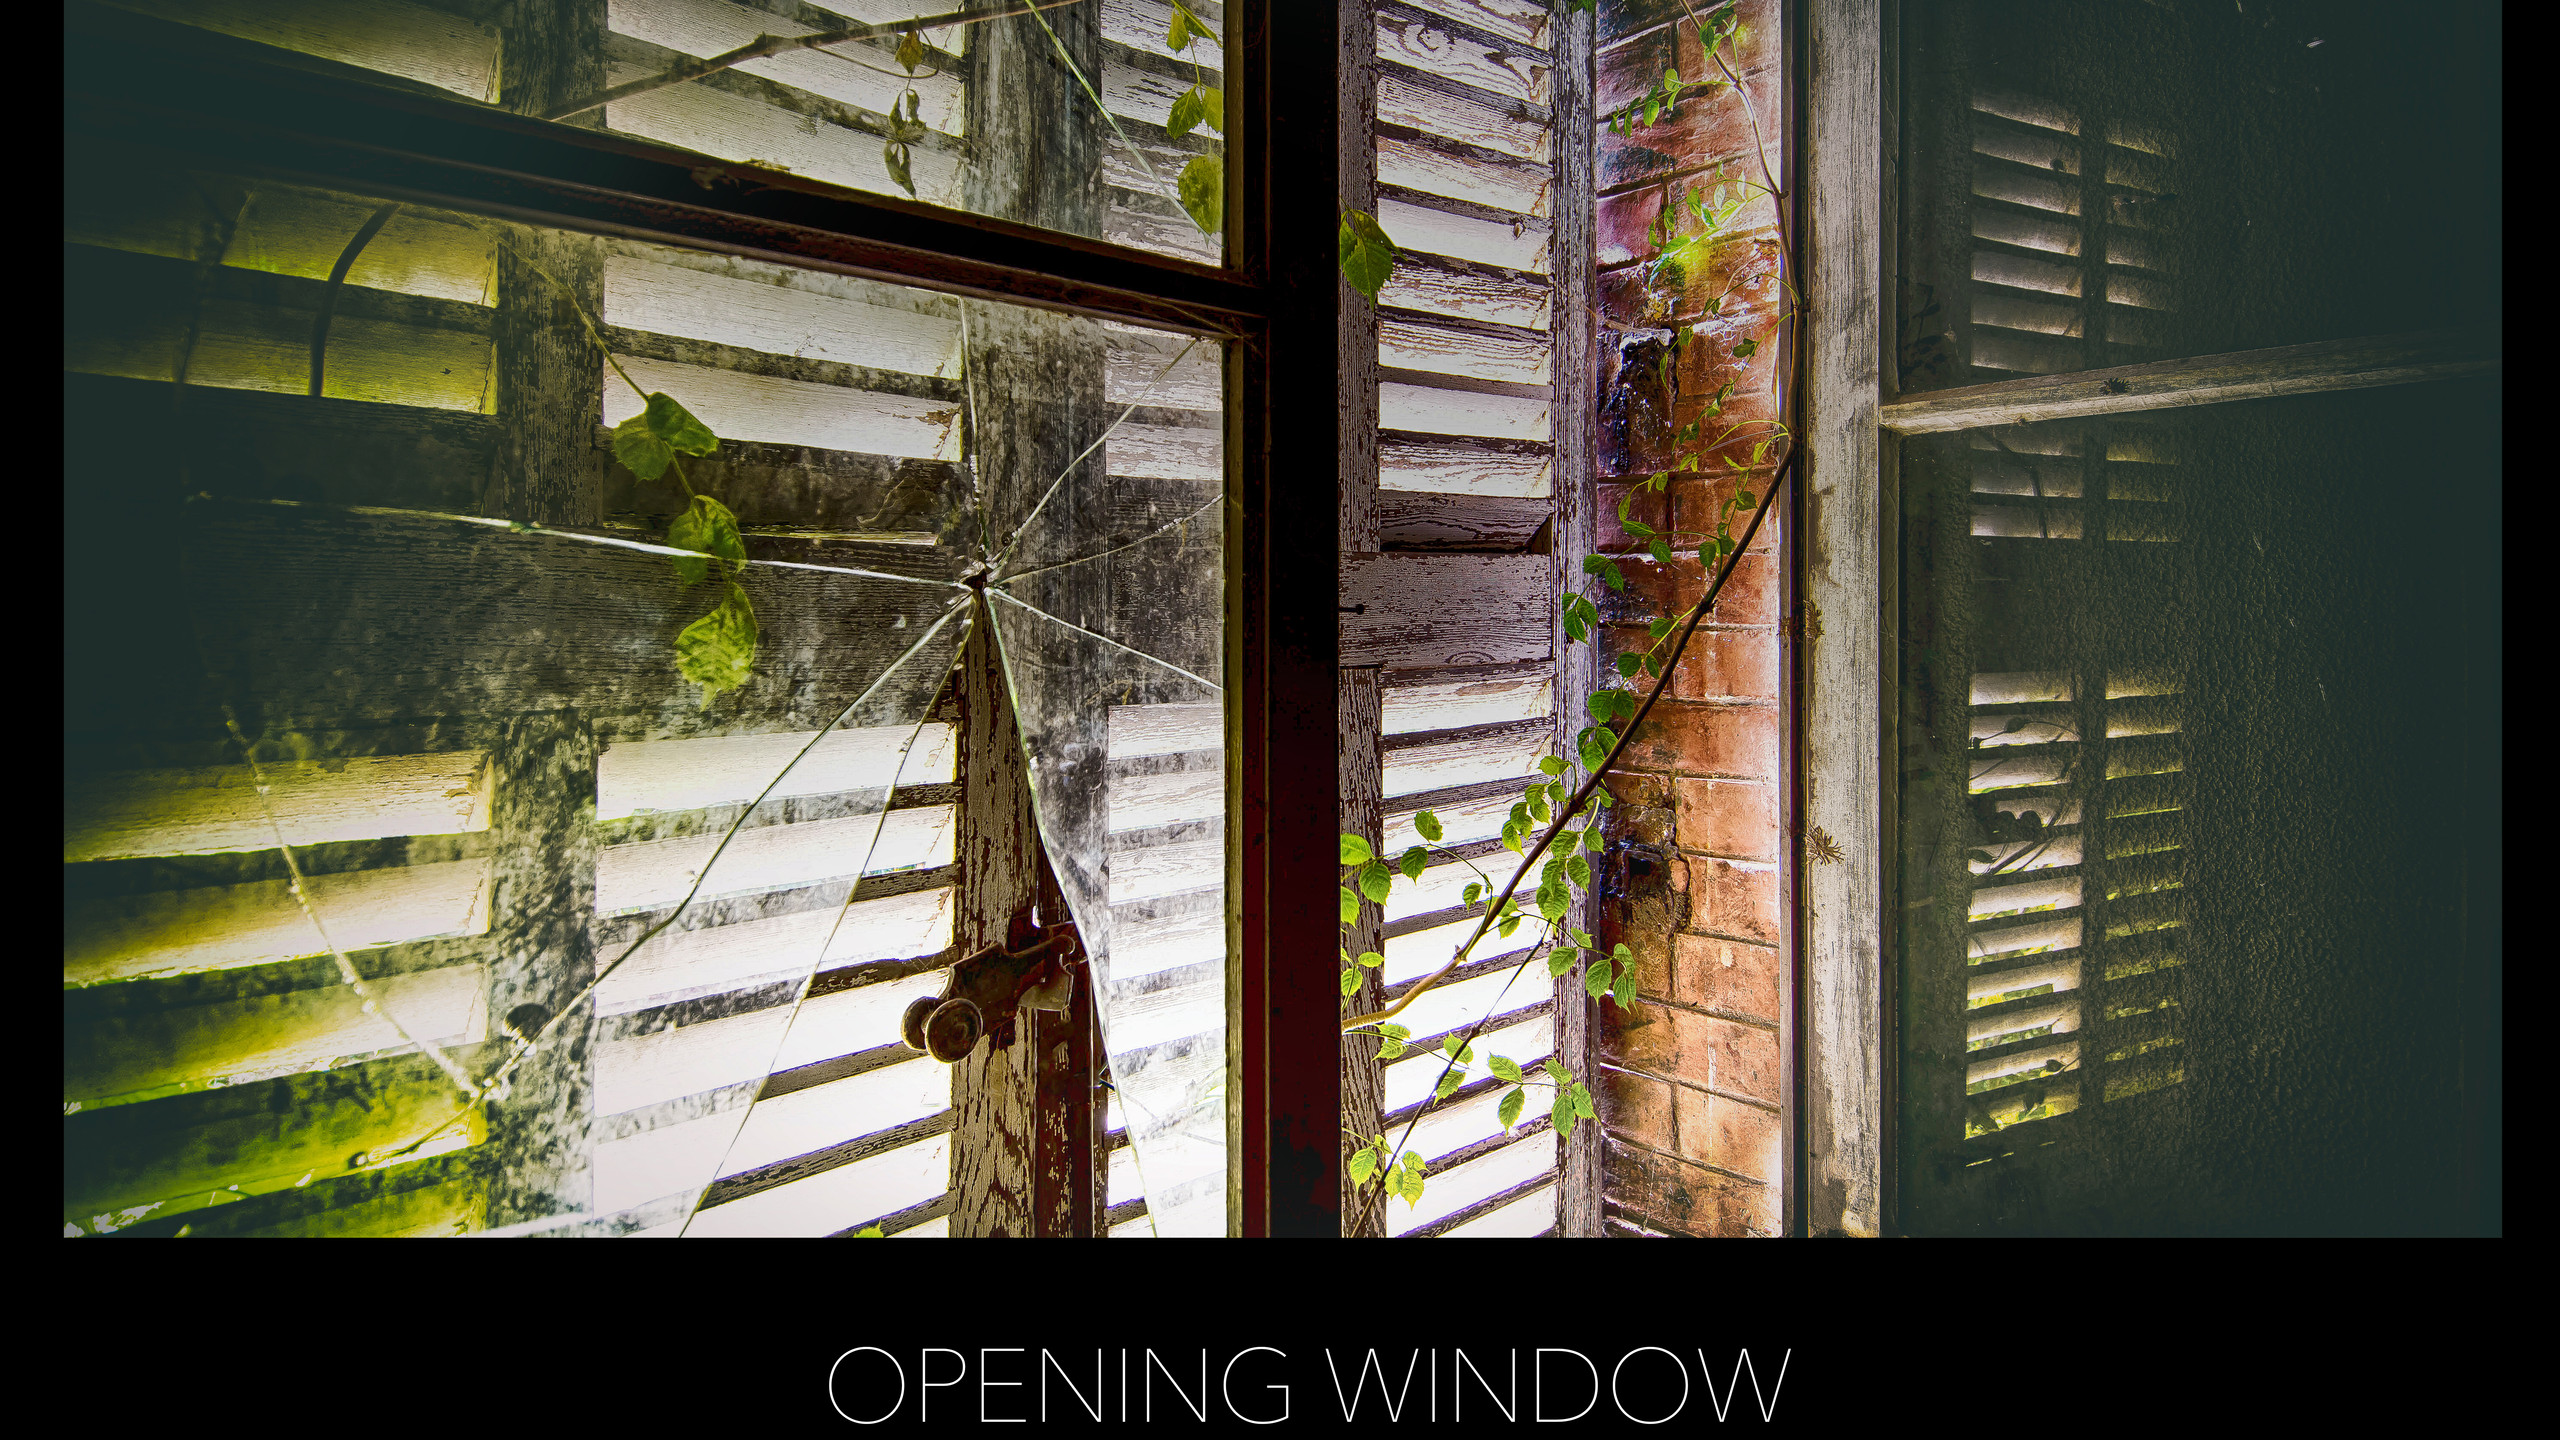 POSTER OPENING WINDOW